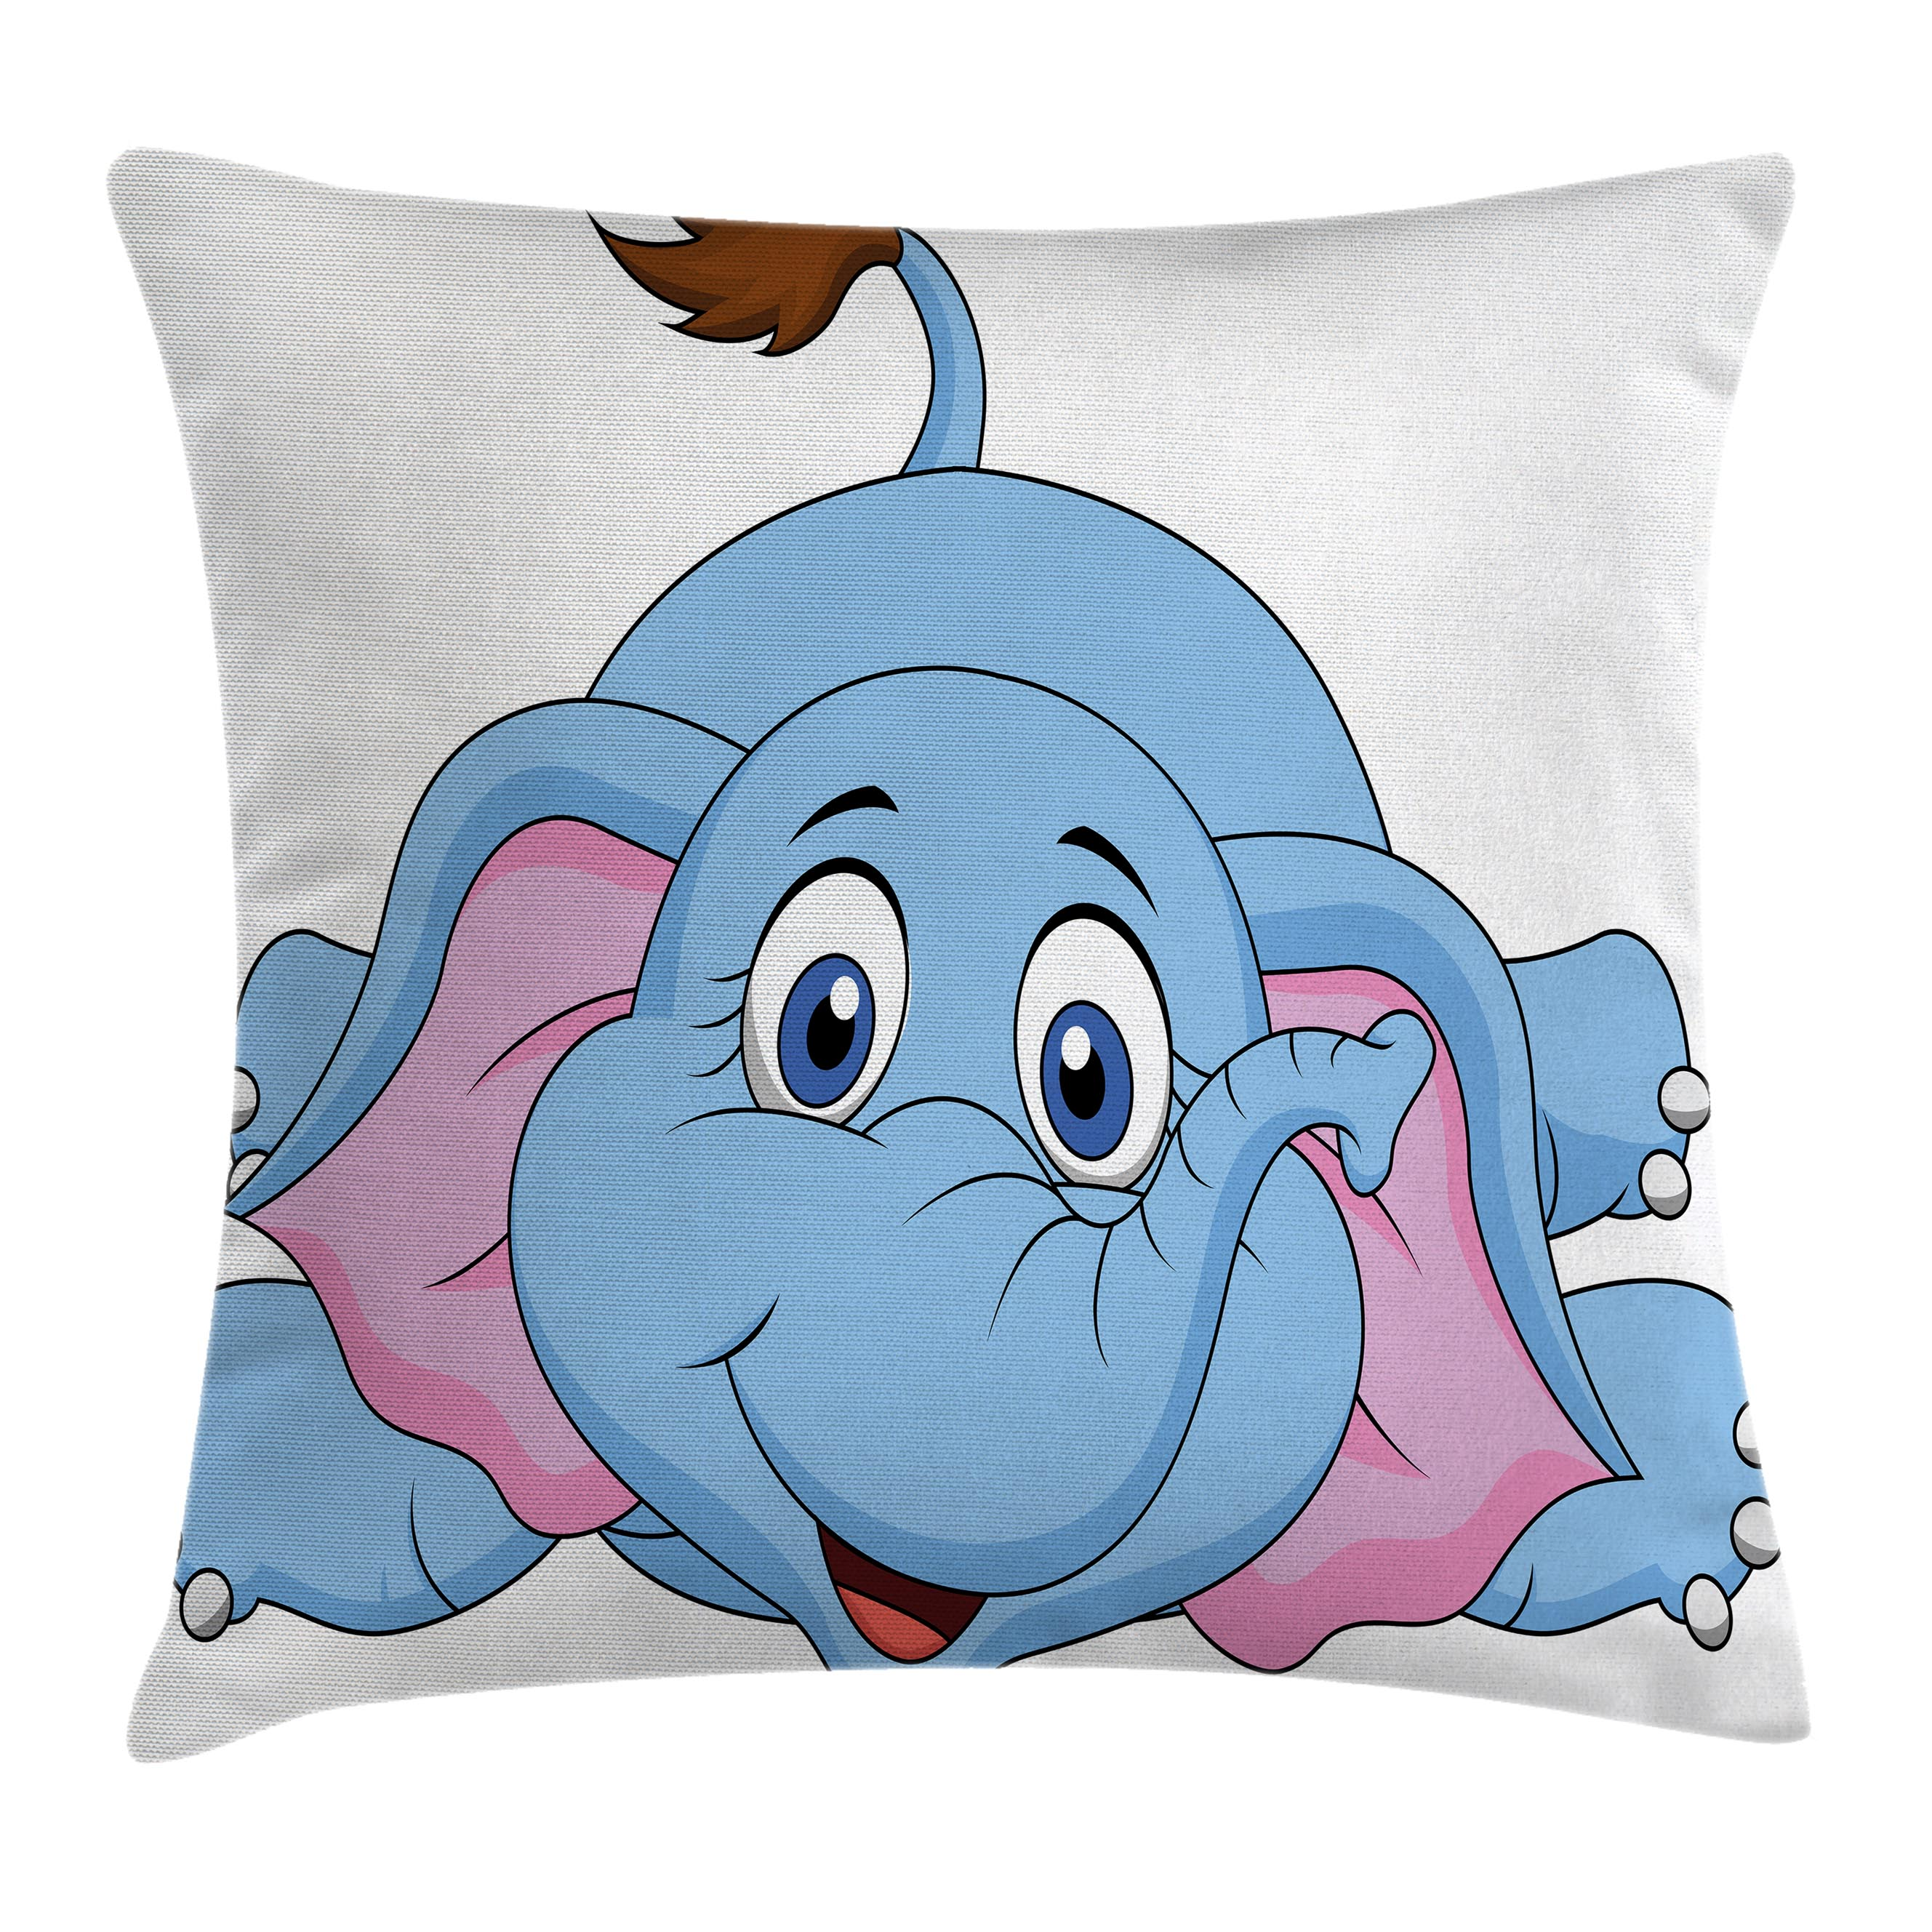 Cartoon Decor Throw Pillow Cushion Cover, Cute Baby Elephant Figure Kids Children Playroom Girls Boys Art Comic Print, Decorative Square Accent Pillow Case, 18 X 18 Inches, Blue Pink, by Ambesonne